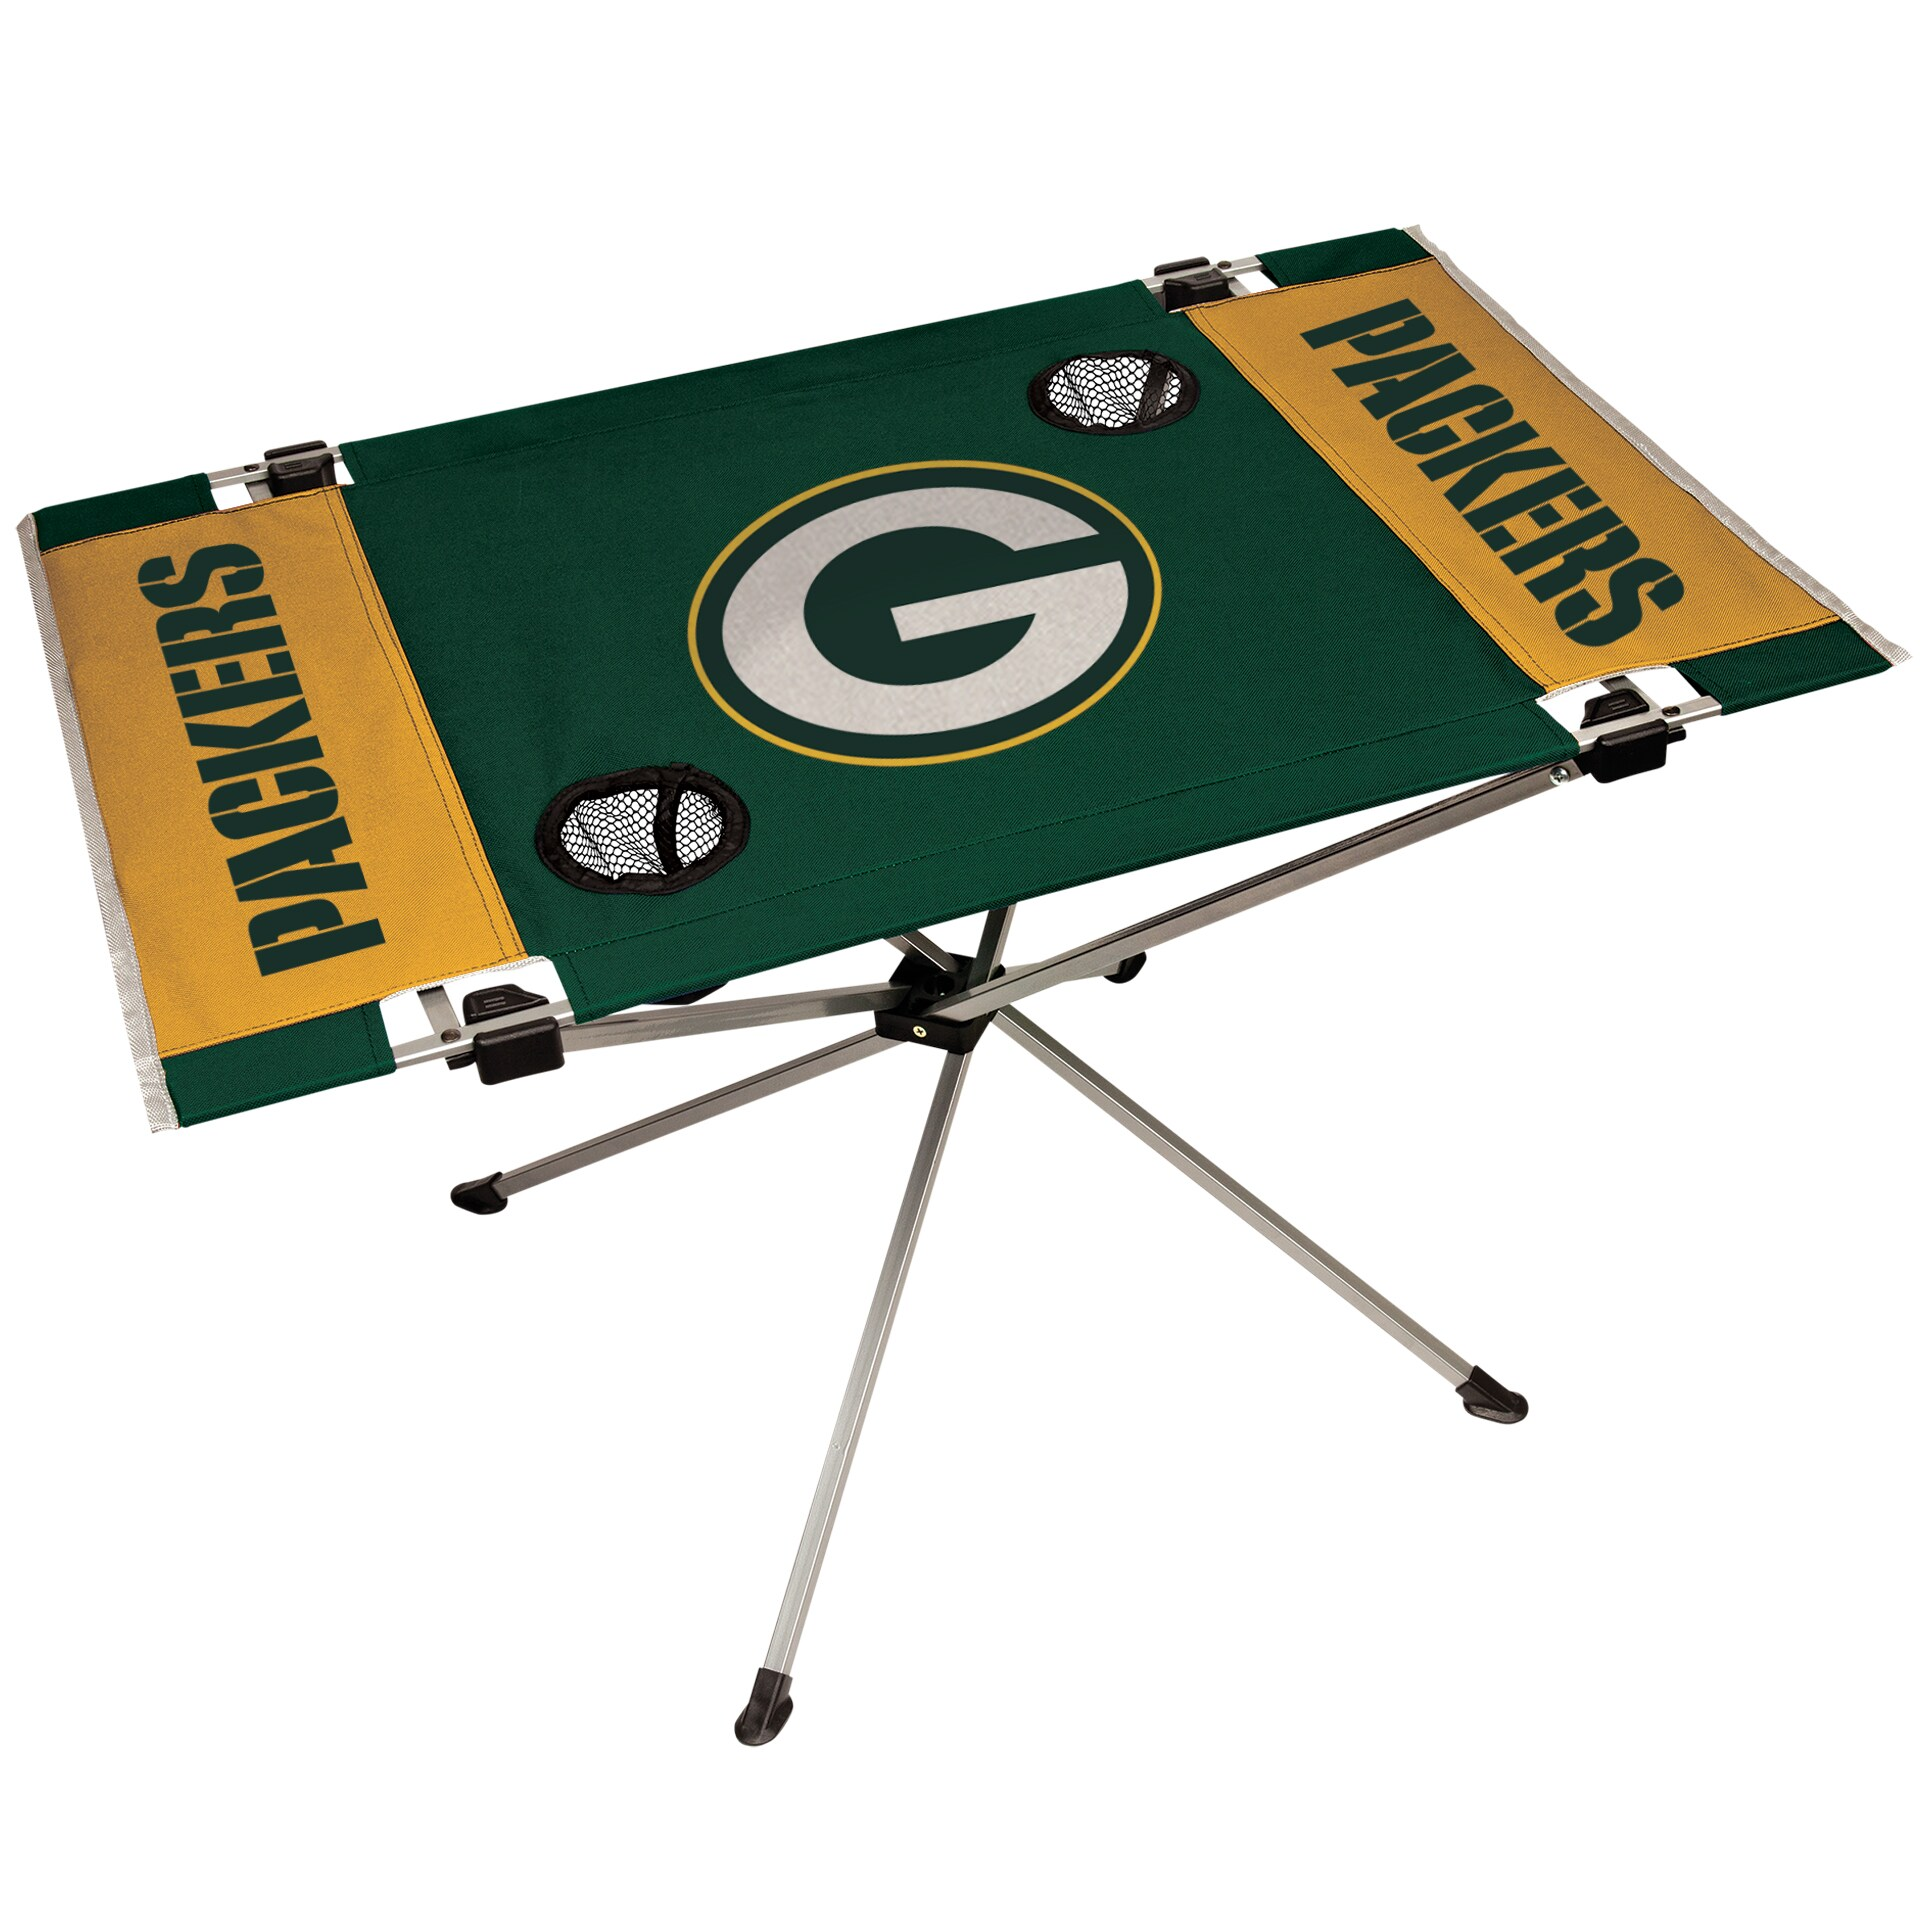 Green Bay Packers End Zone Table